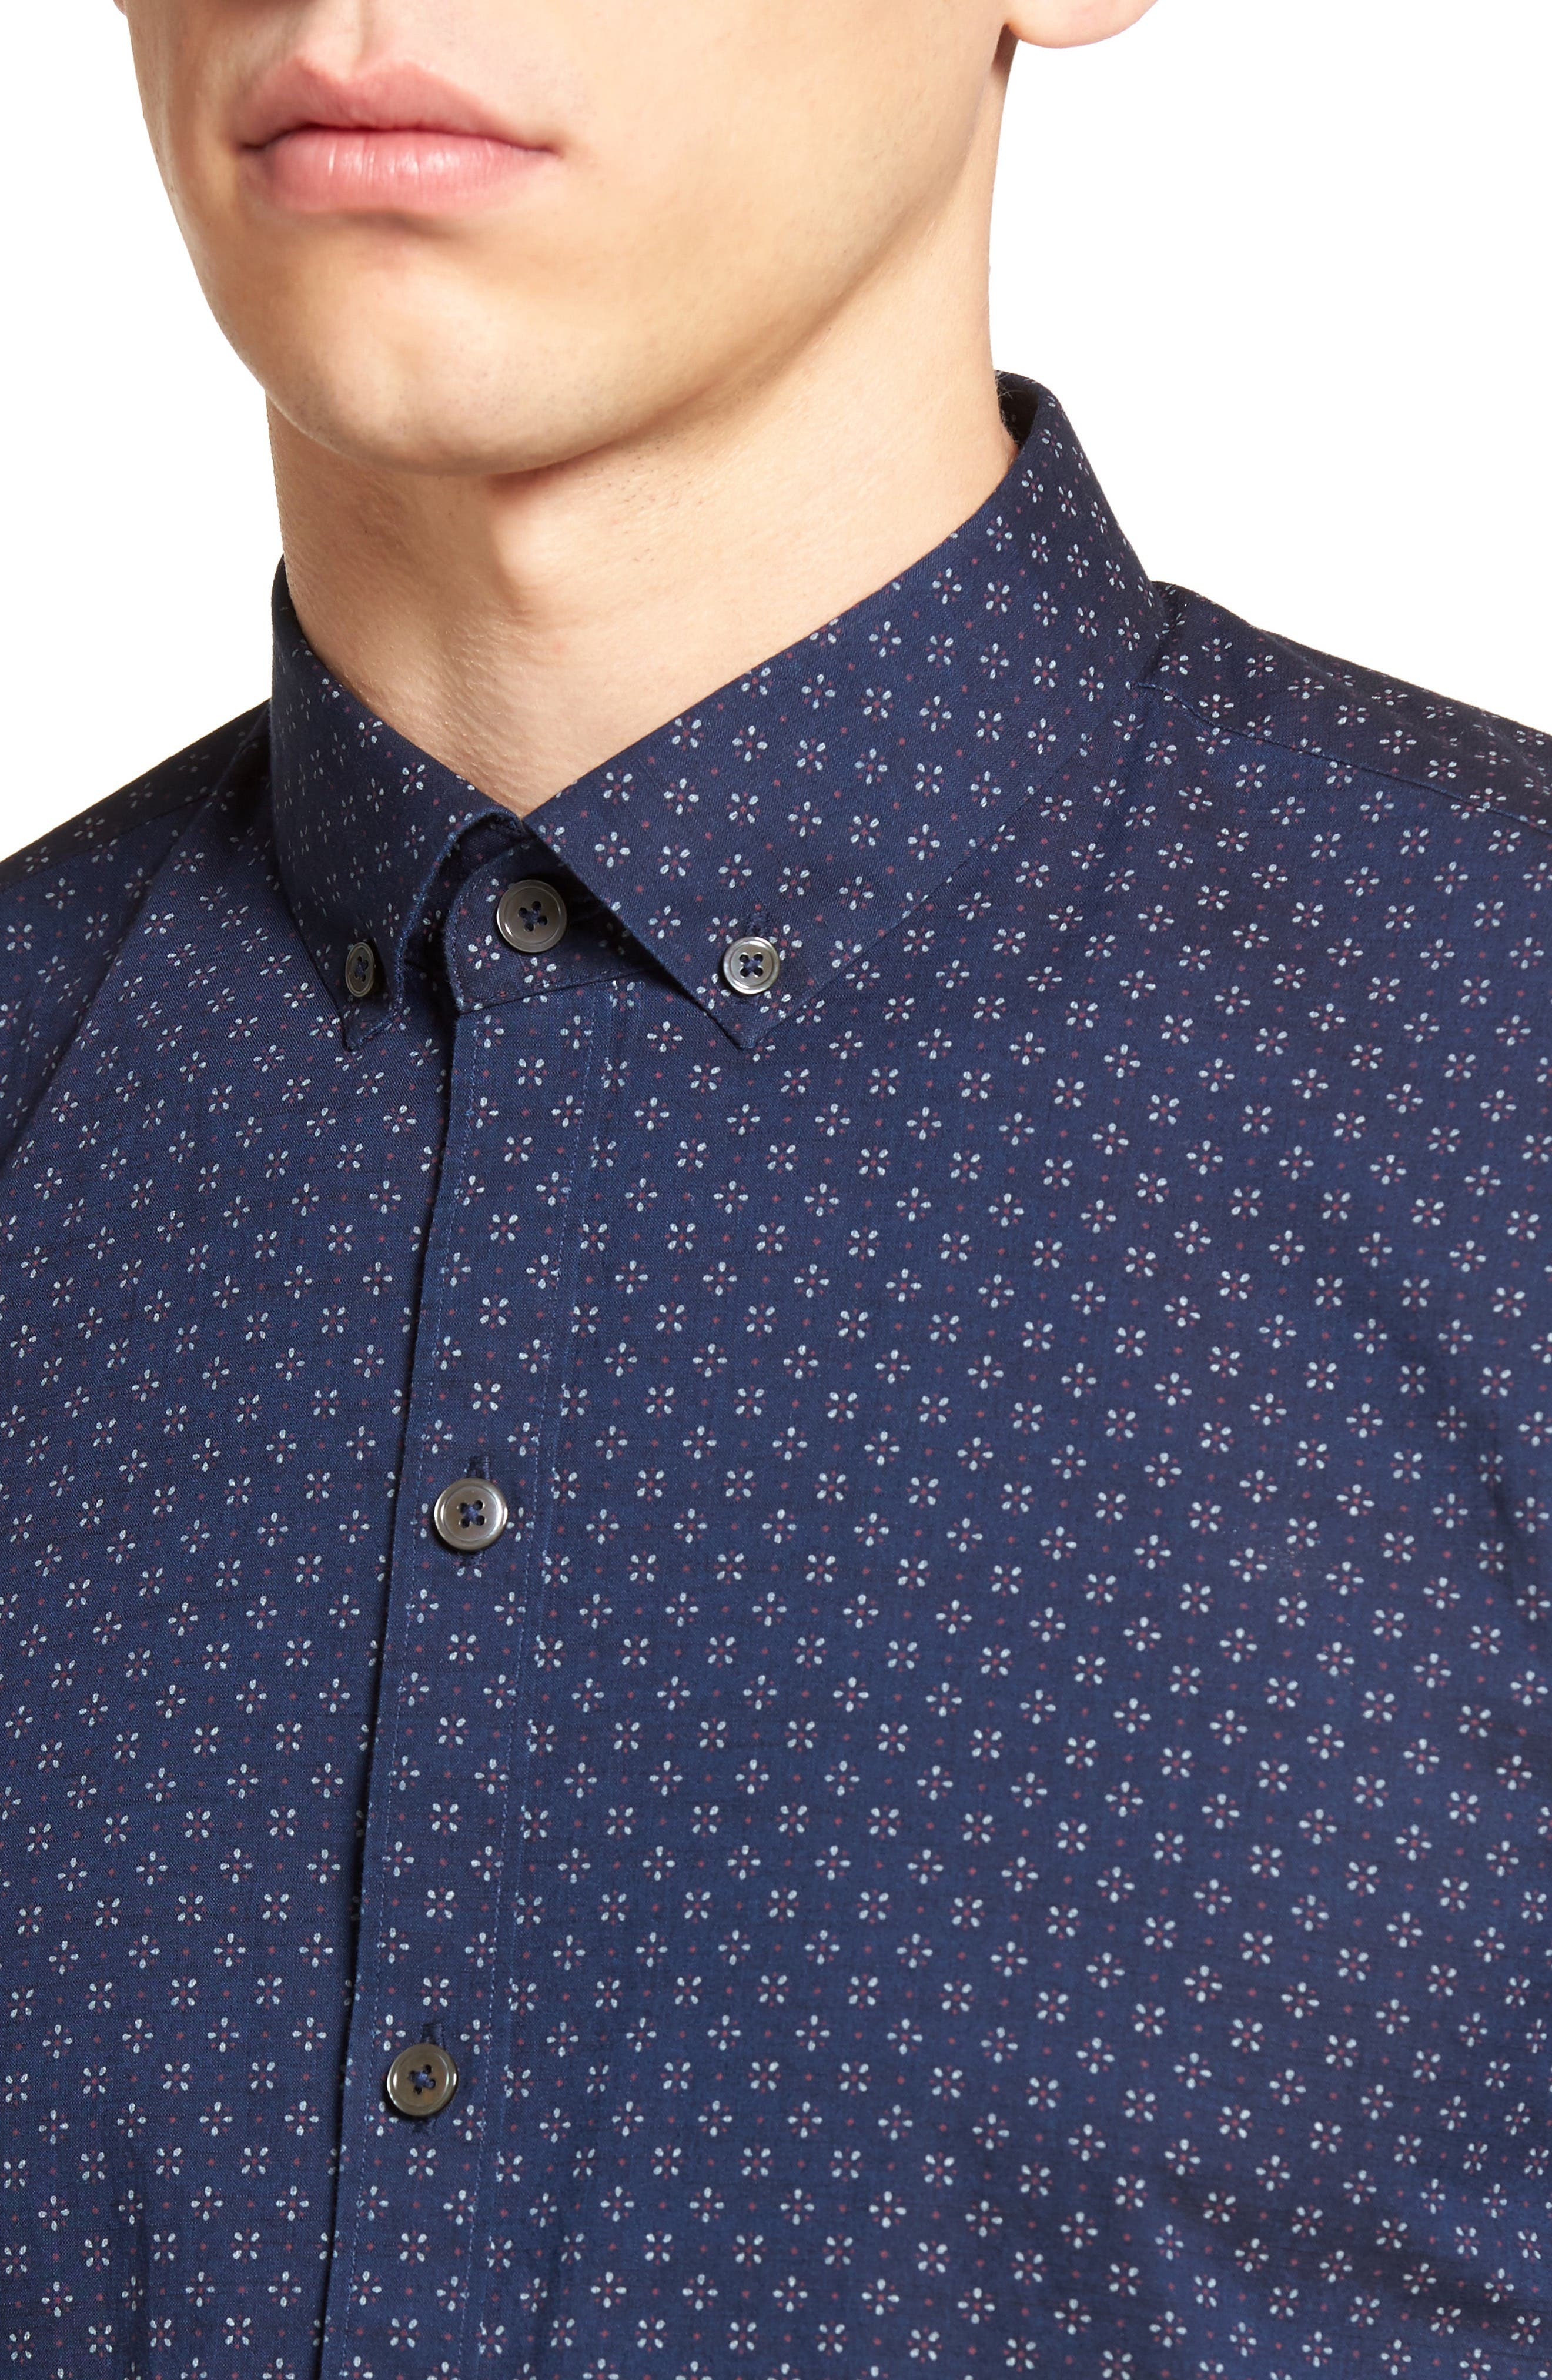 Kinnear Slim Fit Print Shirt,                             Alternate thumbnail 4, color,